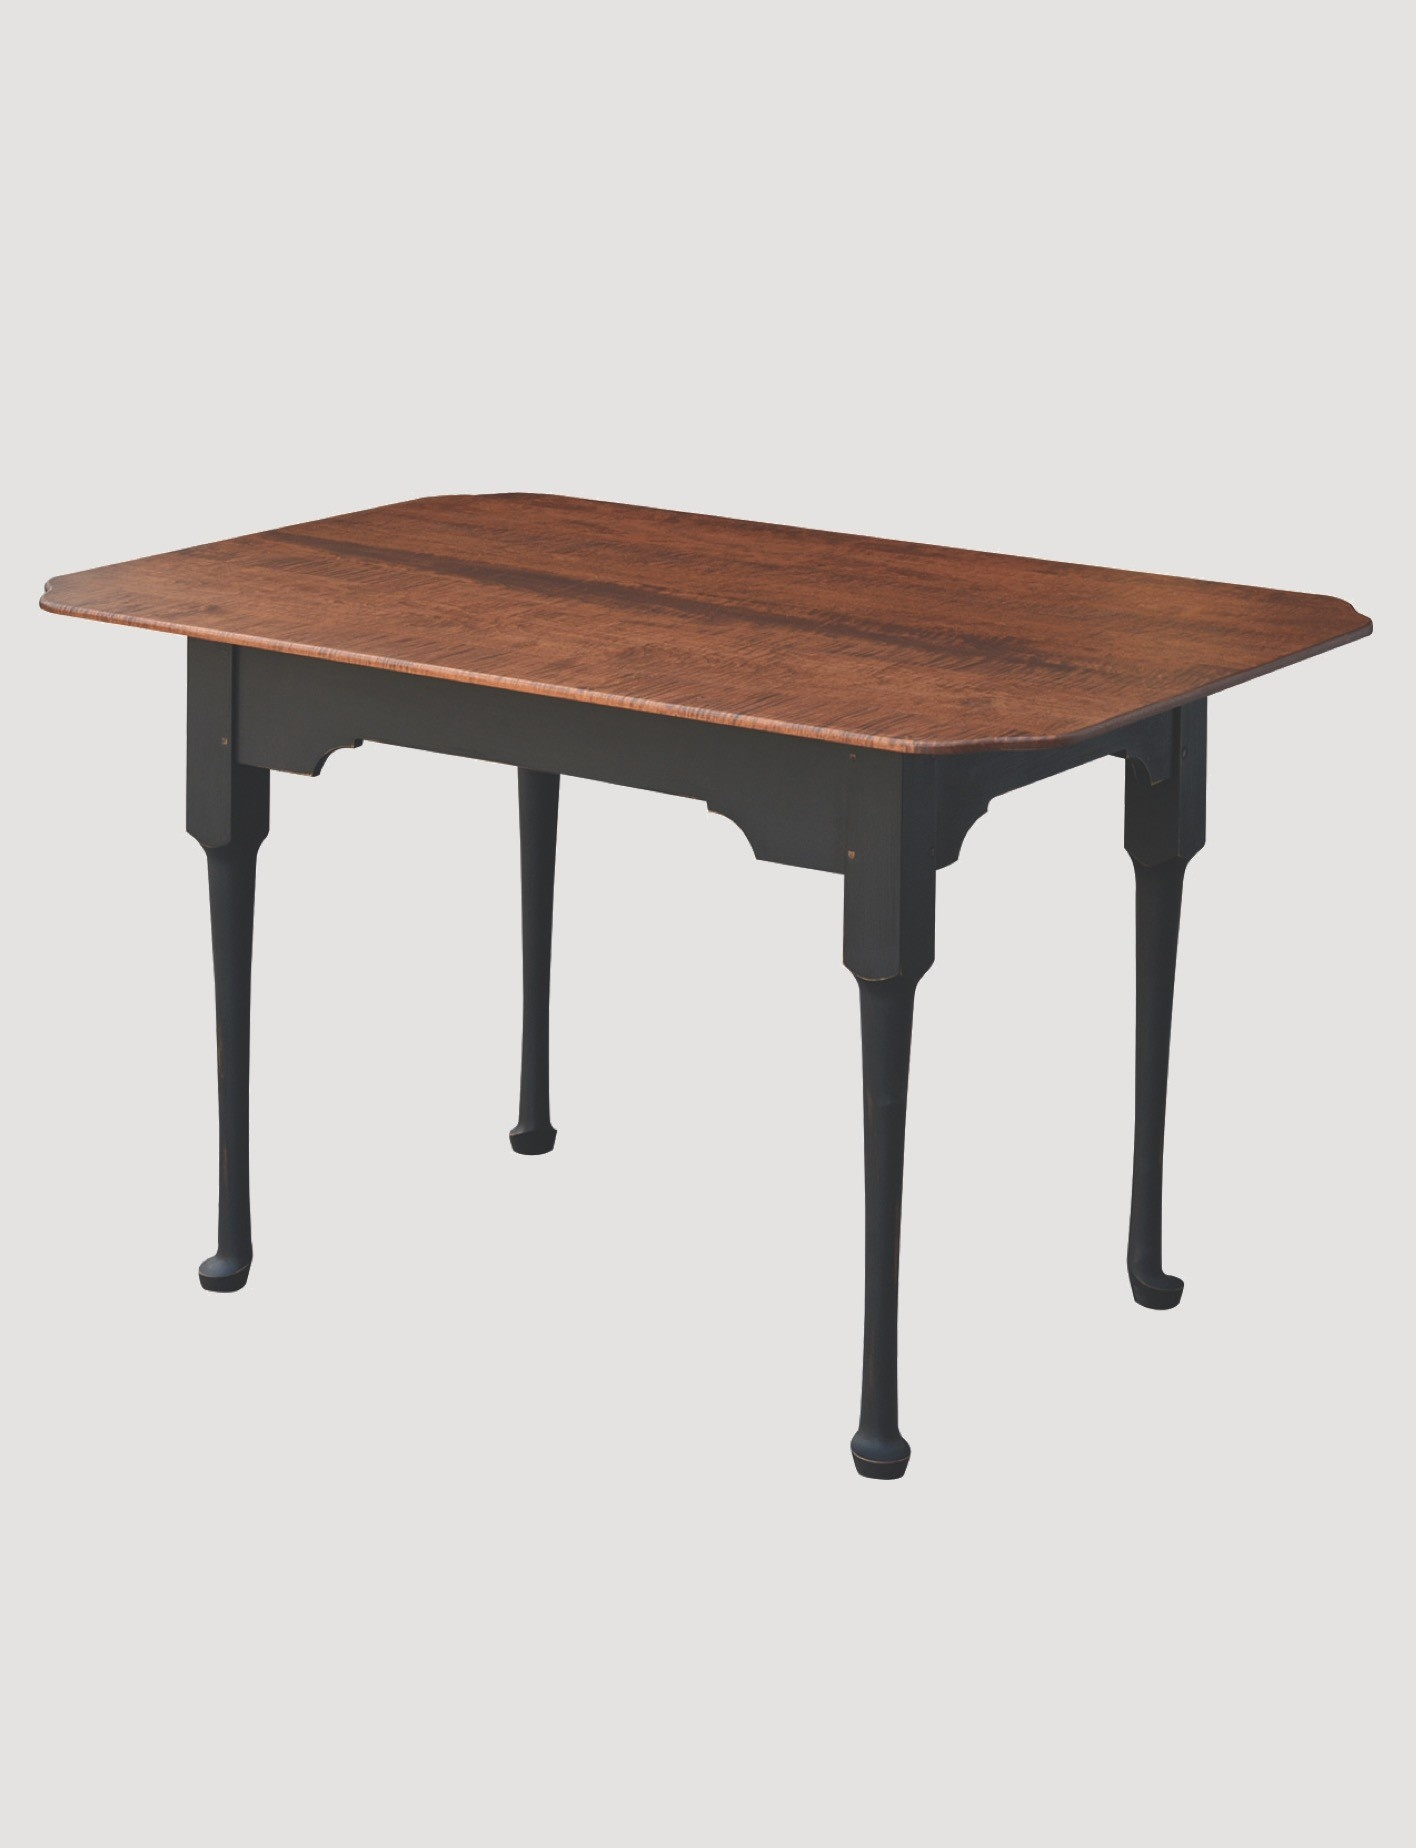 Primitive Designs Spoonfoot Tiger Maple Top Dining Table with Black Rubbed Legs